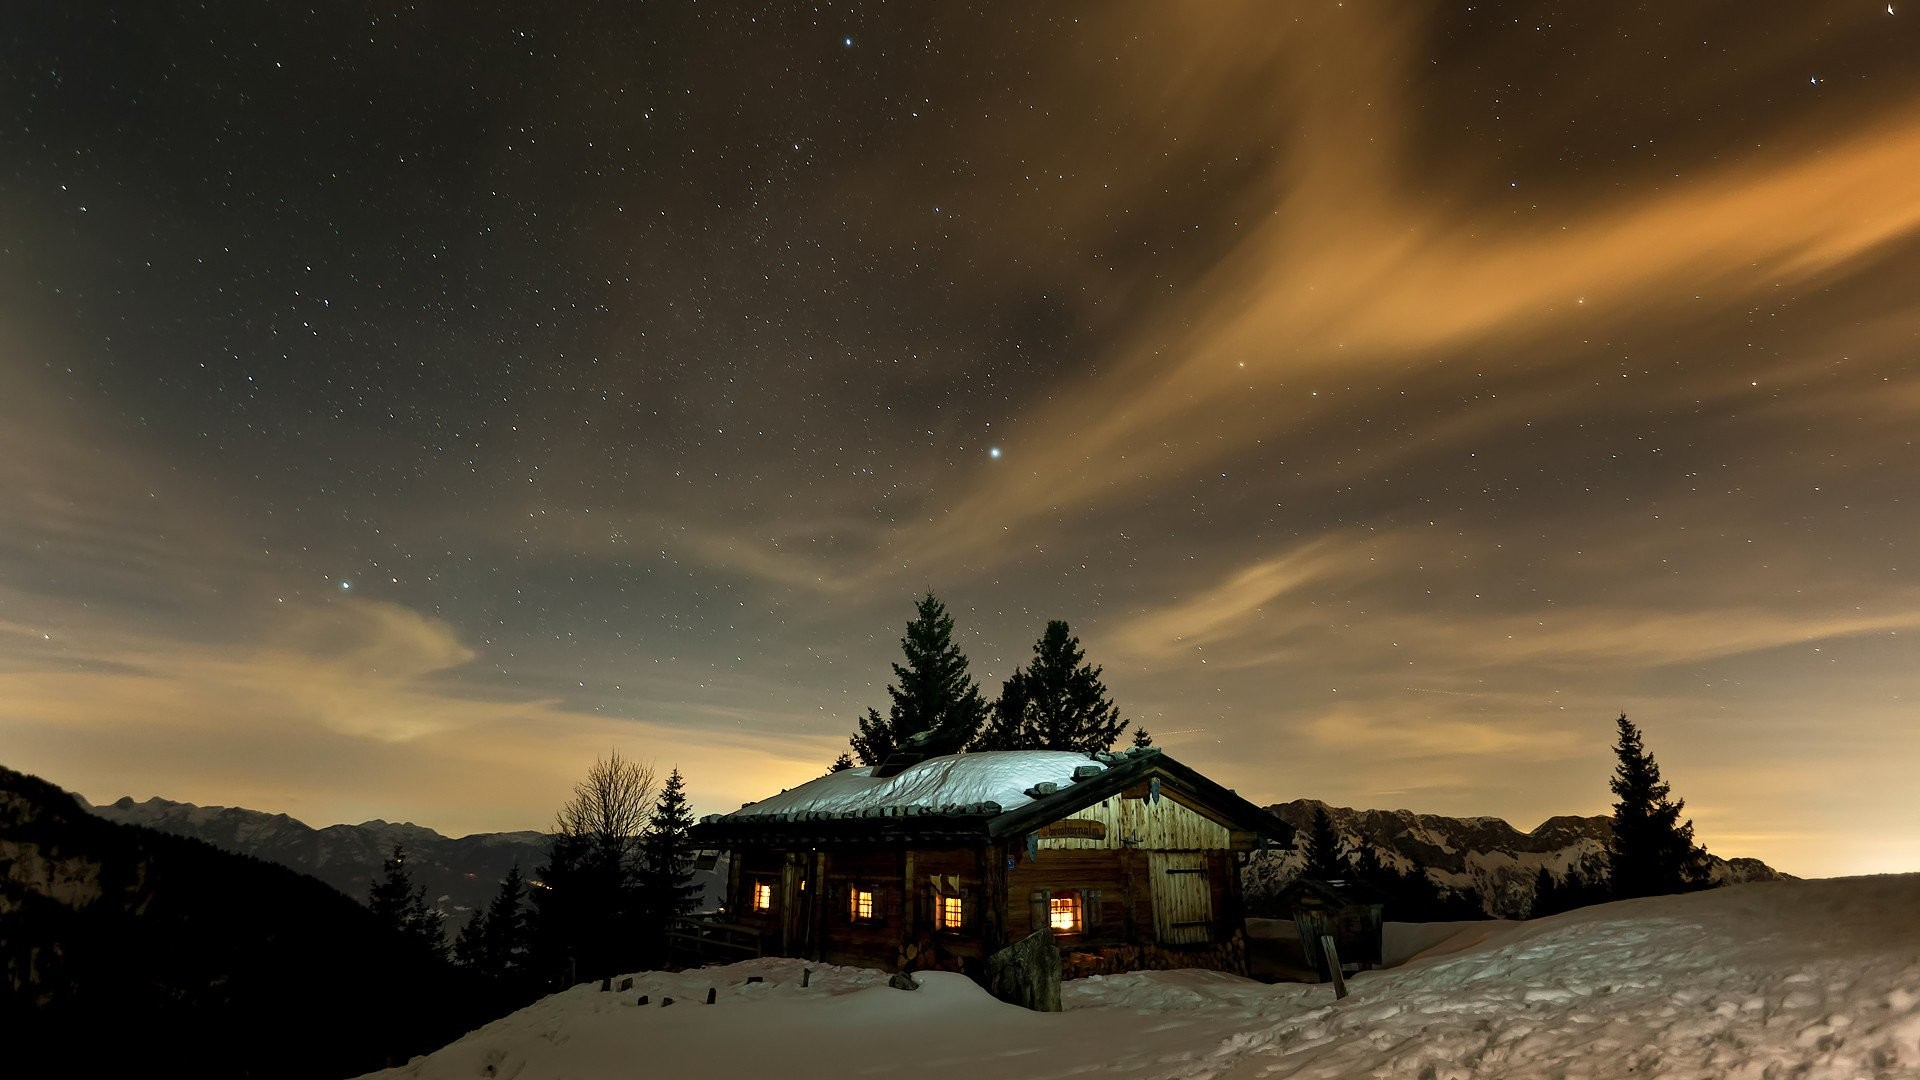 Mountains winter night stars skyscapes cottage night sky wallpaper |  | 264009 | WallpaperUP